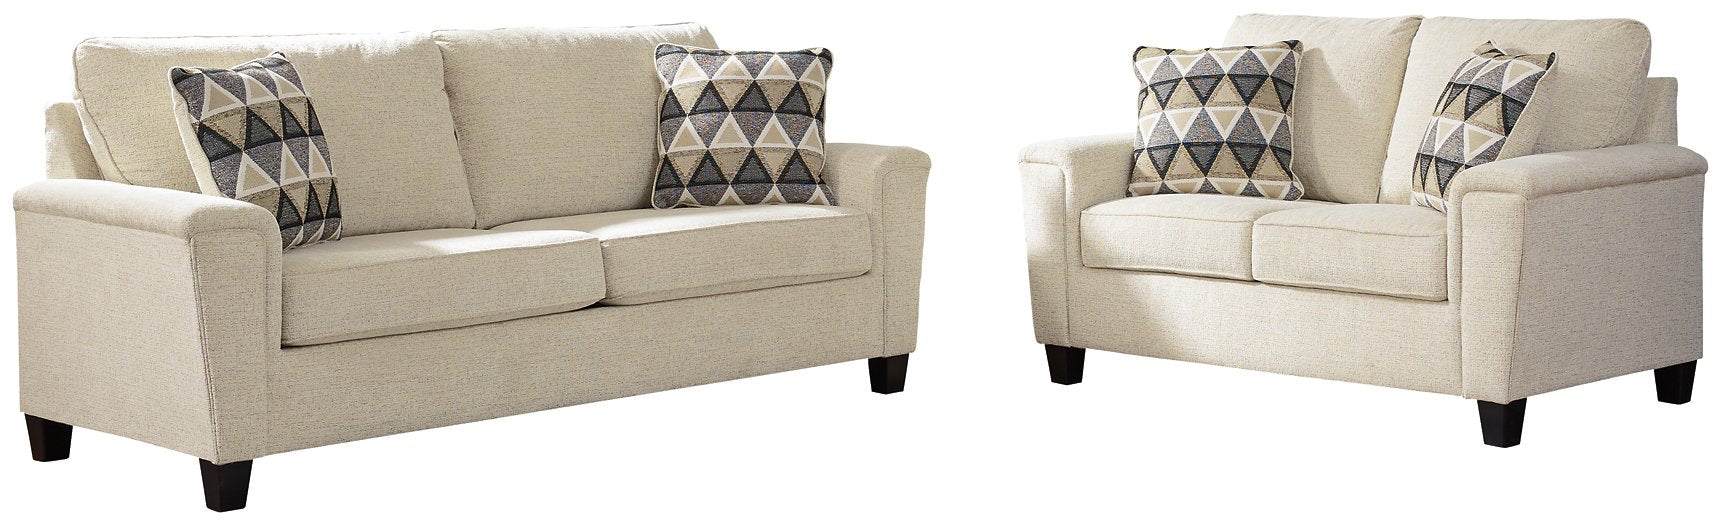 Abinger Signature Design 2-Piece Living Room Set